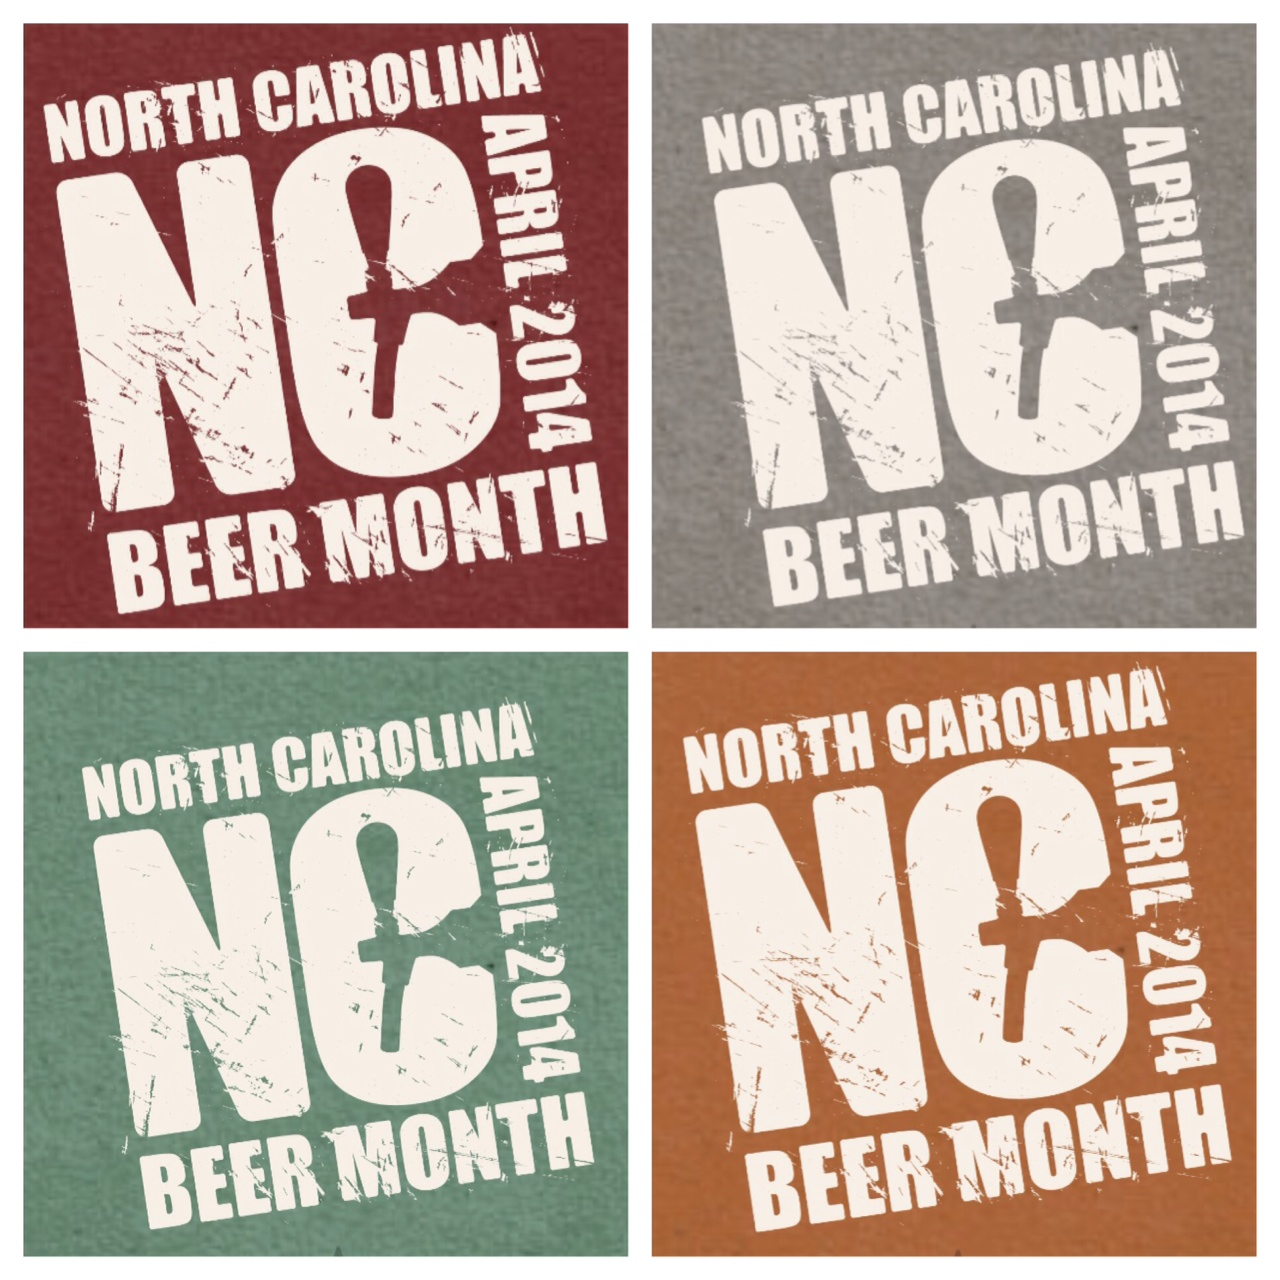 picstitch_beermonth